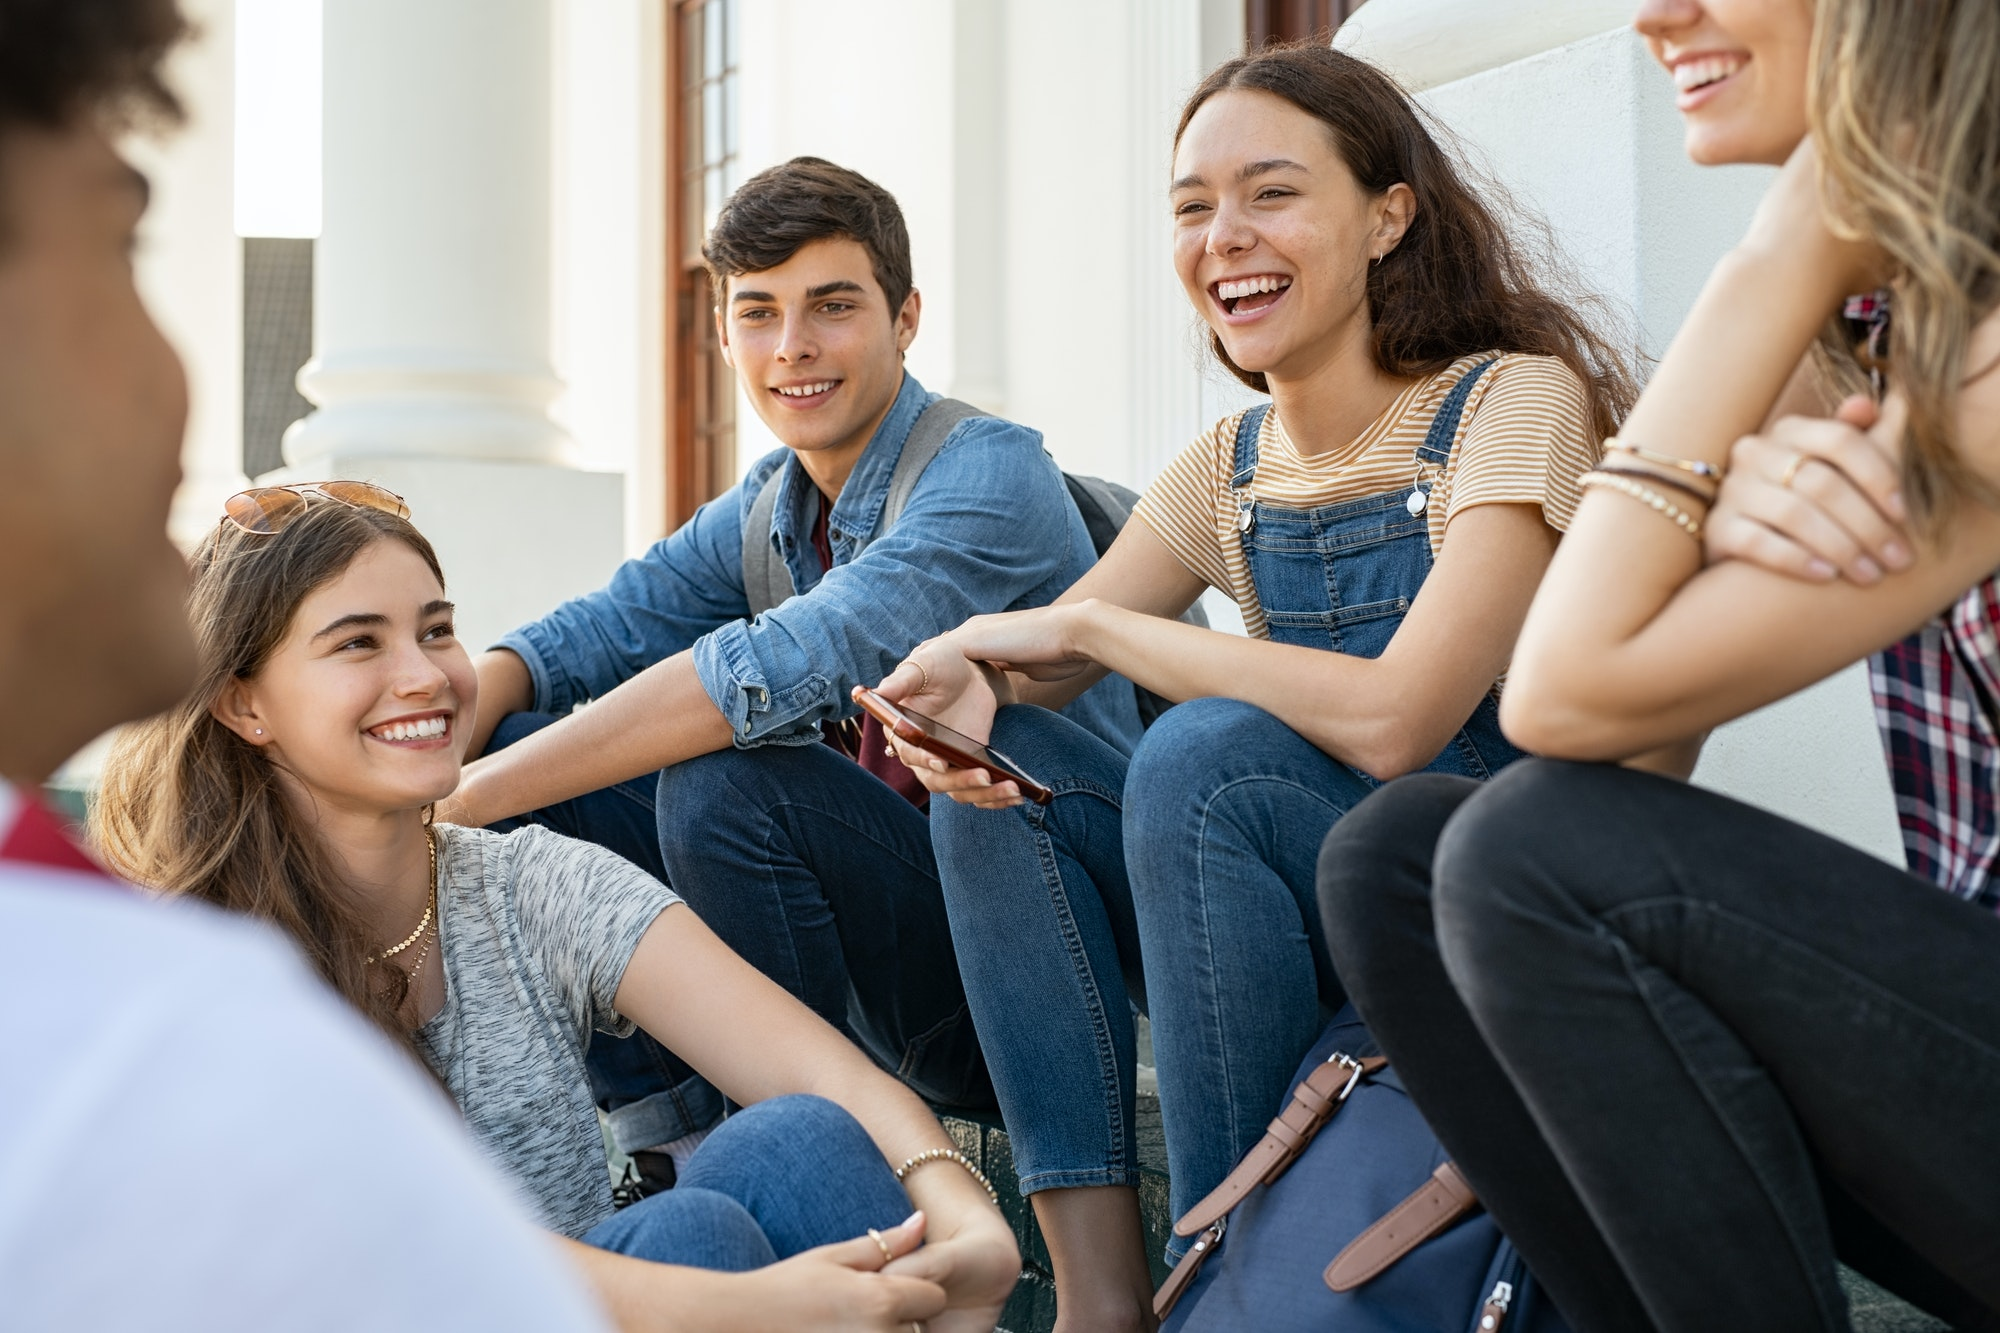 Teenager friends sitting together and laughing